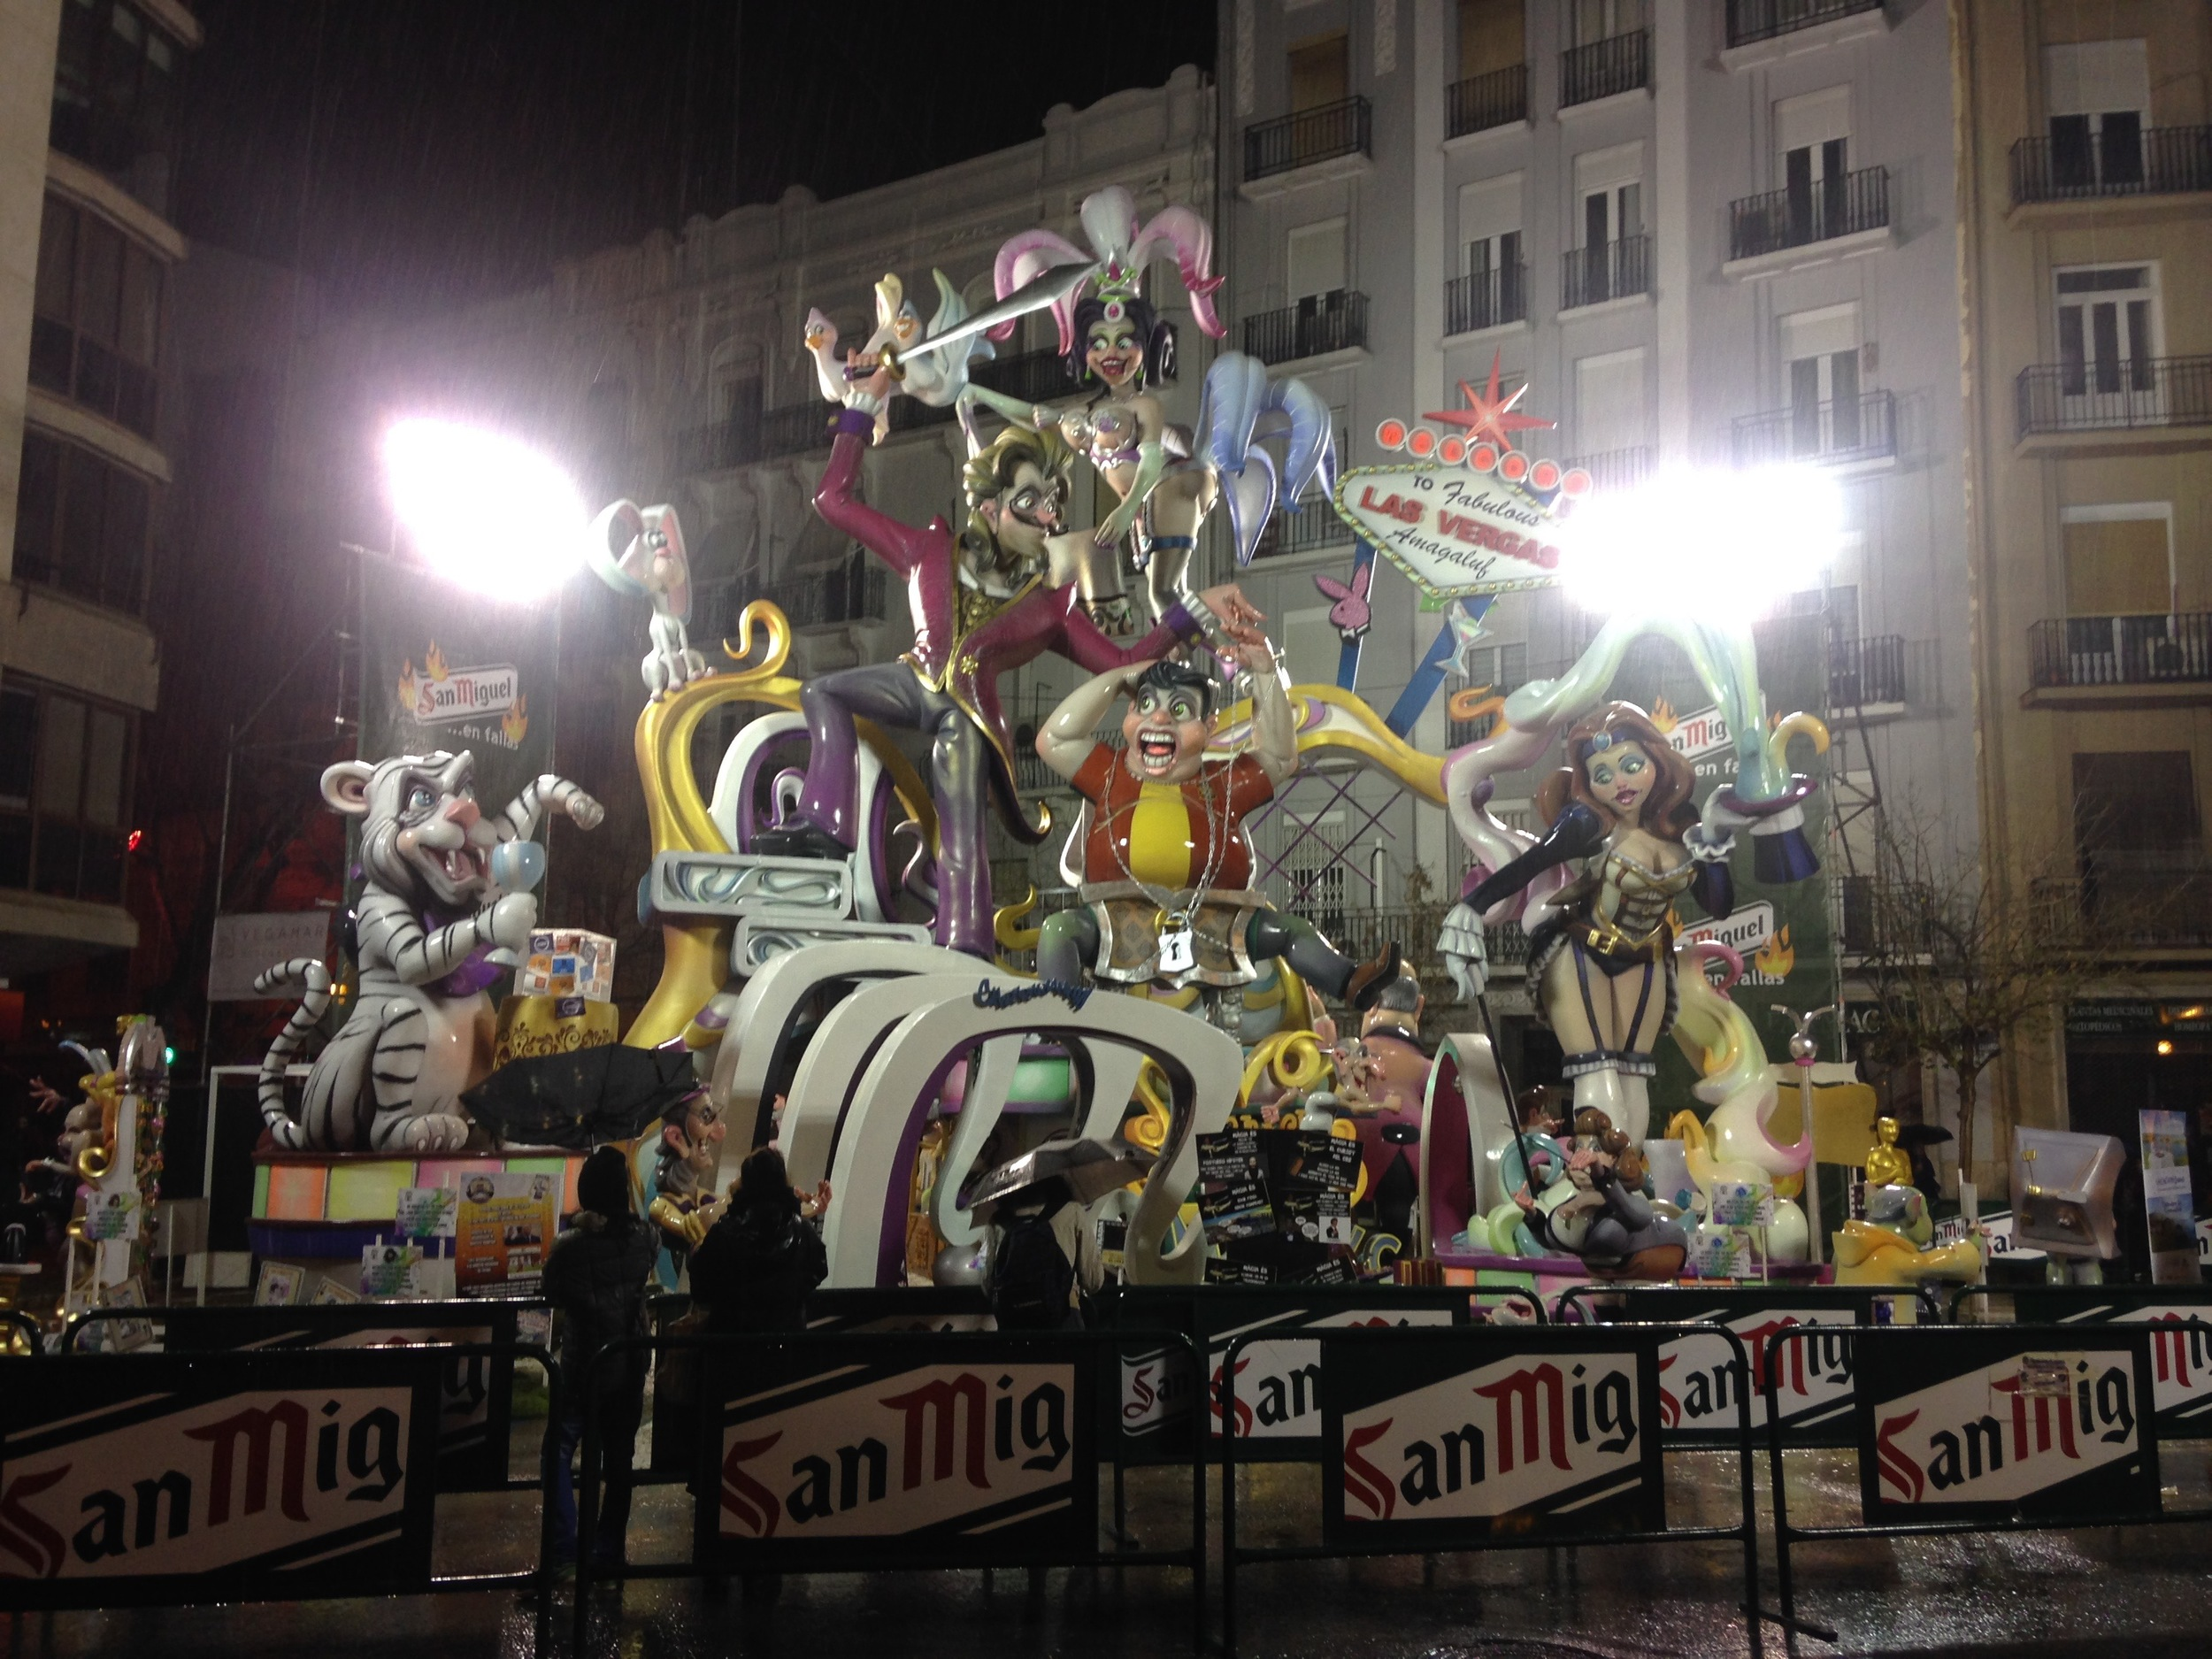 One example of a falla. Do you see how HUGE this thing is? This is no elementary school art project, people! Imagine men pouring gasoline on it and then watching it go up in flames when they light the matches. Also note how close to the apartment buildings that falla is.